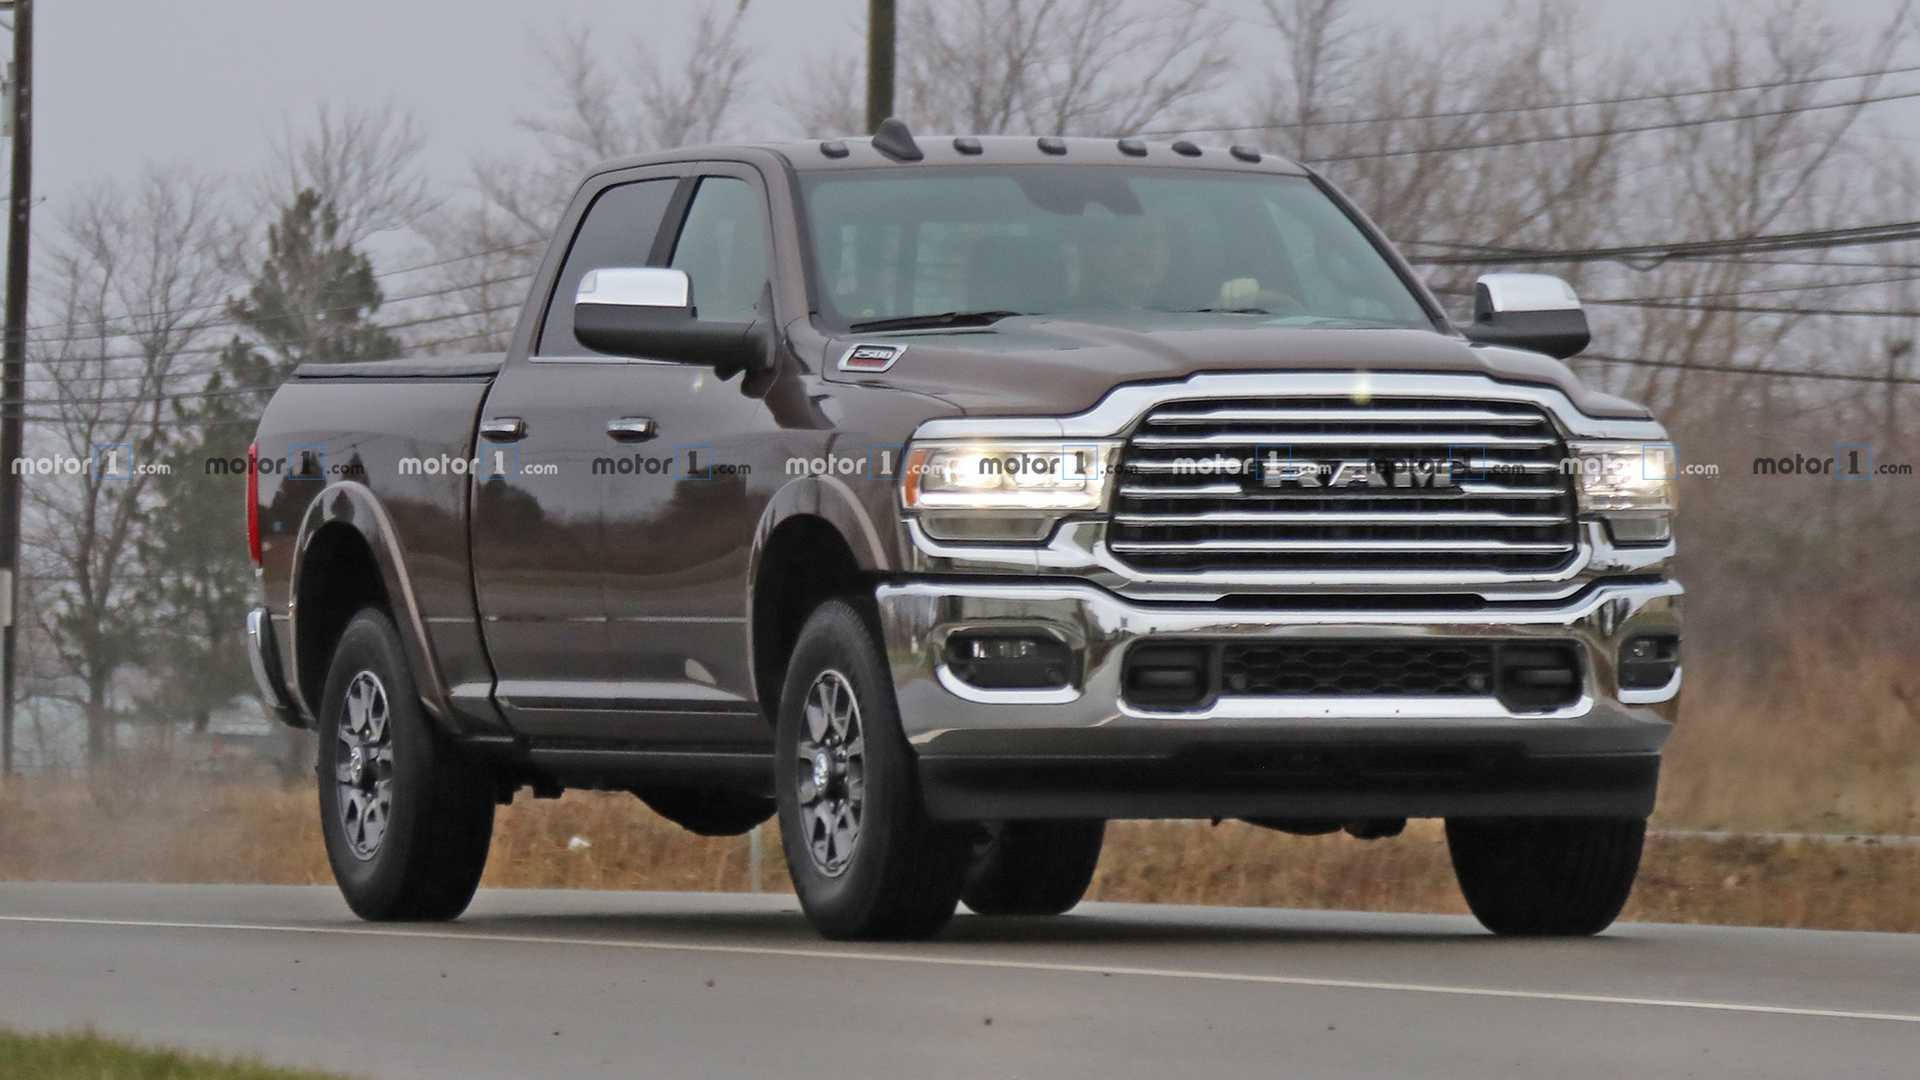 49 New 2020 Dodge Ram 3500 Interior Specs